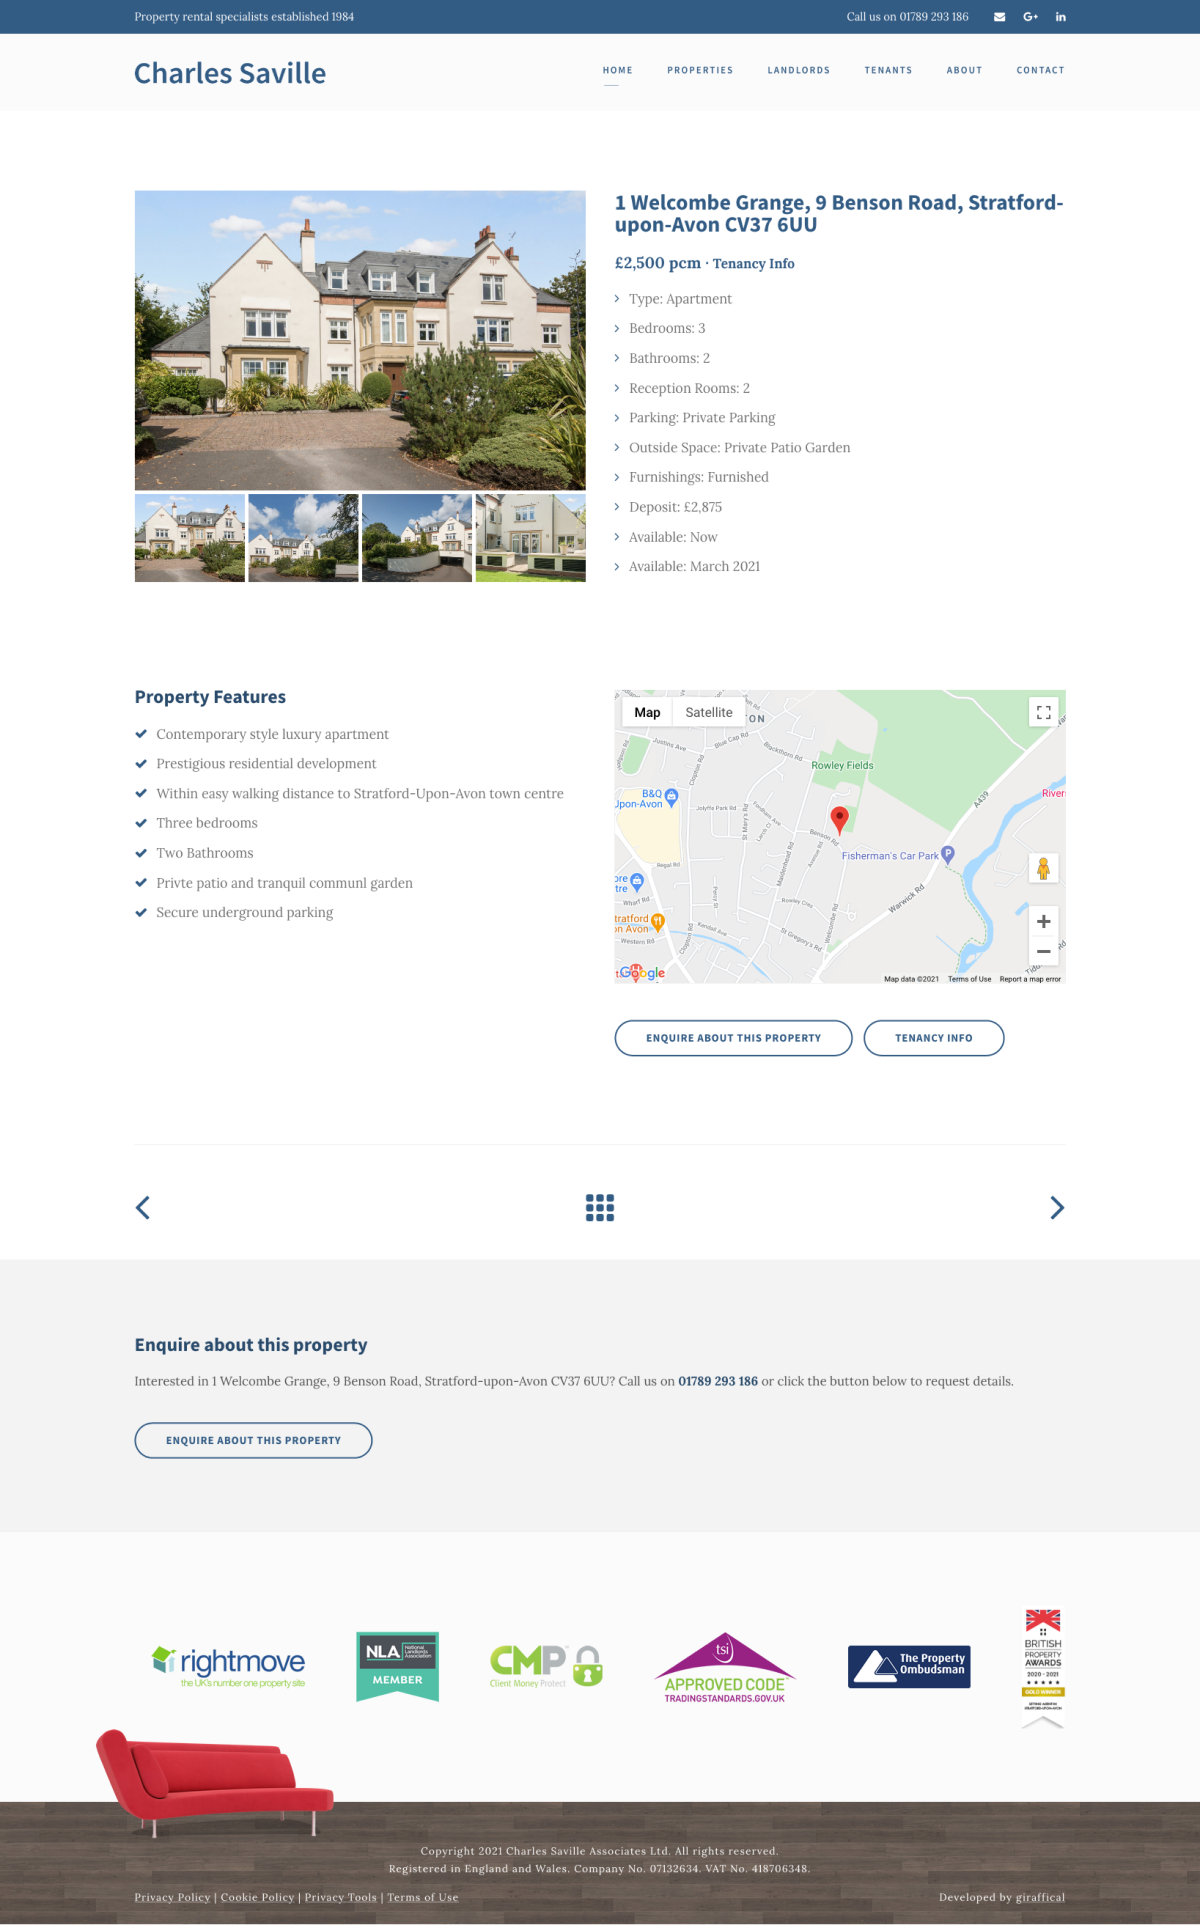 Letting Agent Website Design - Charles Saville - Property Page